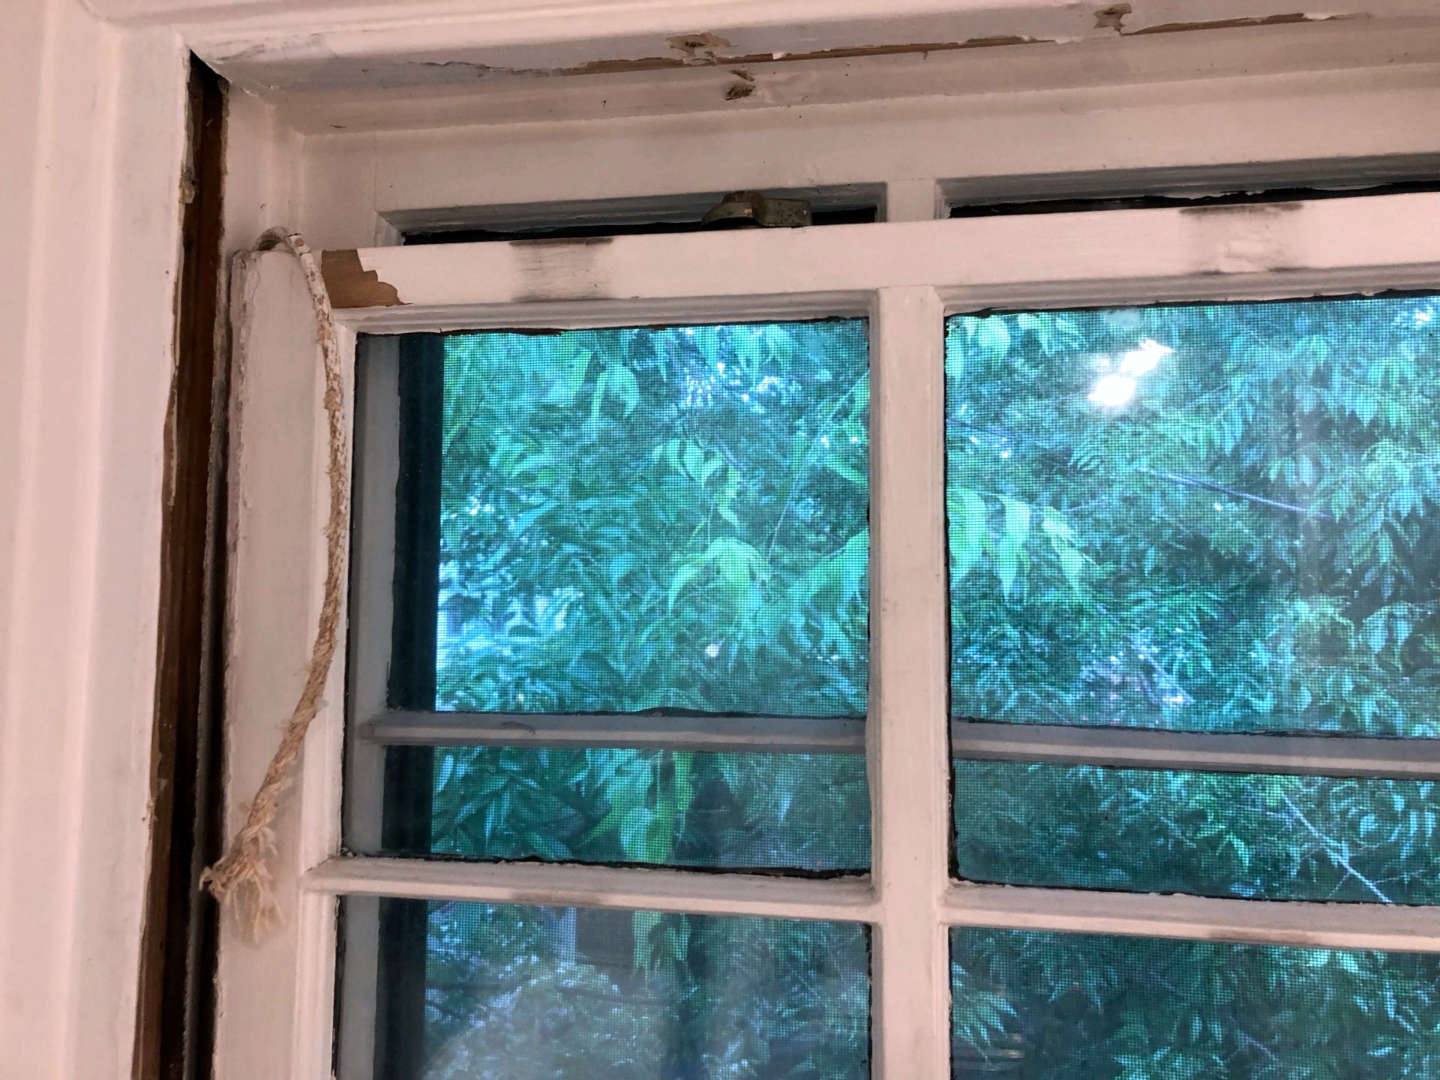 With the stop beads removed and cords cut the sash can be removed from the window frame.